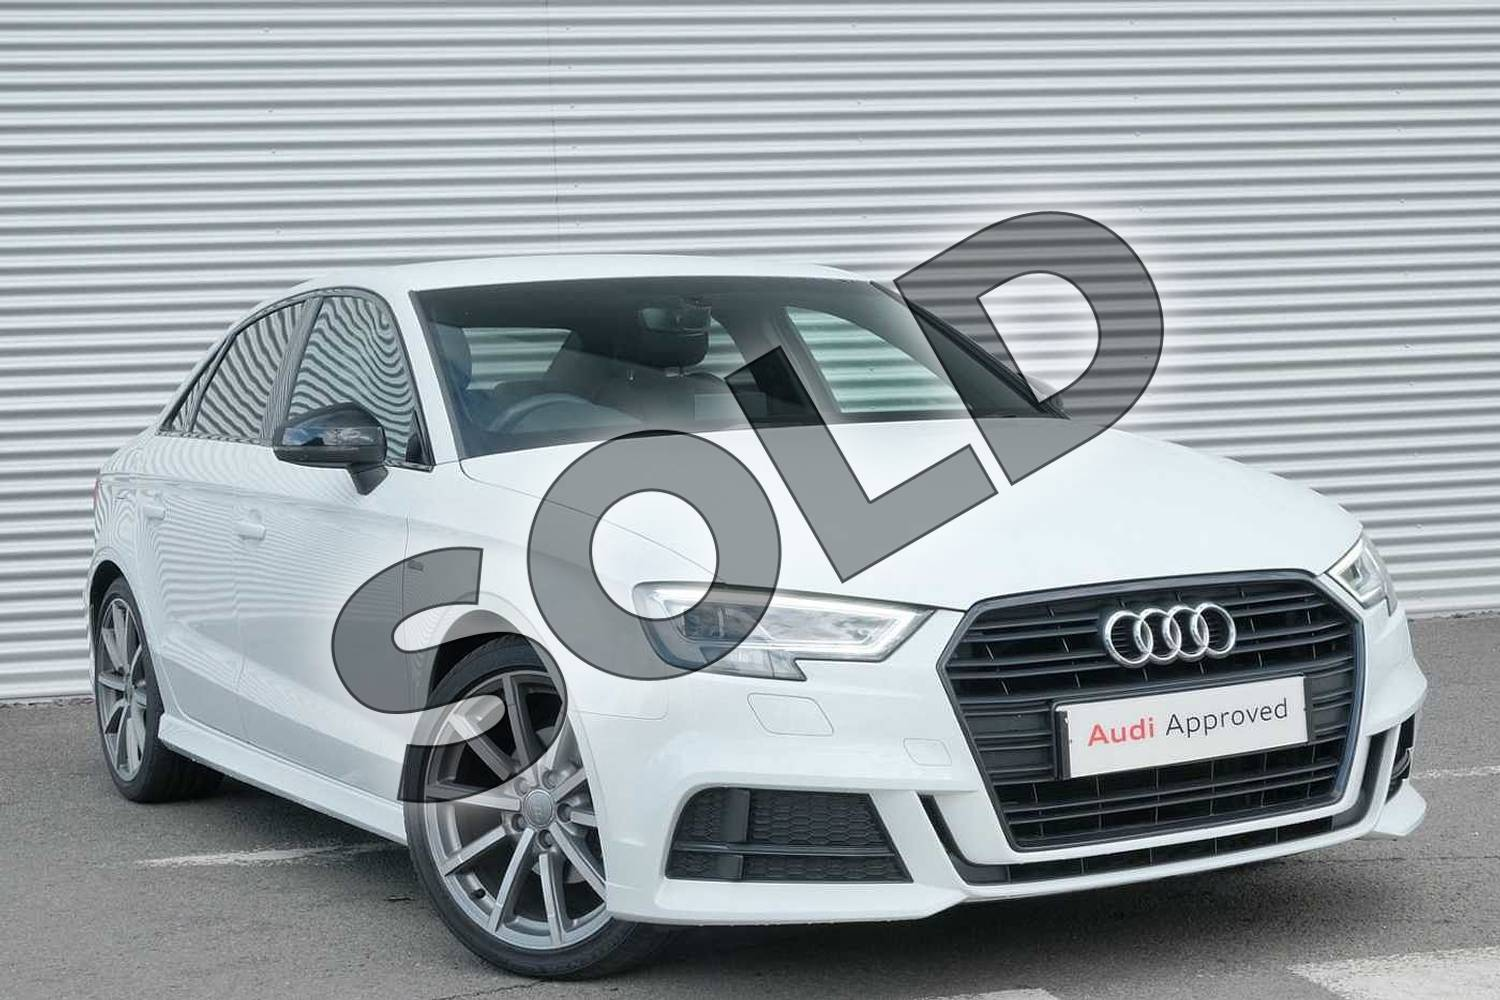 2018 Audi A3 Saloon Special Editions 1.5 TFSI Black Edition 4dr in Glacier White Metallic at Coventry Audi